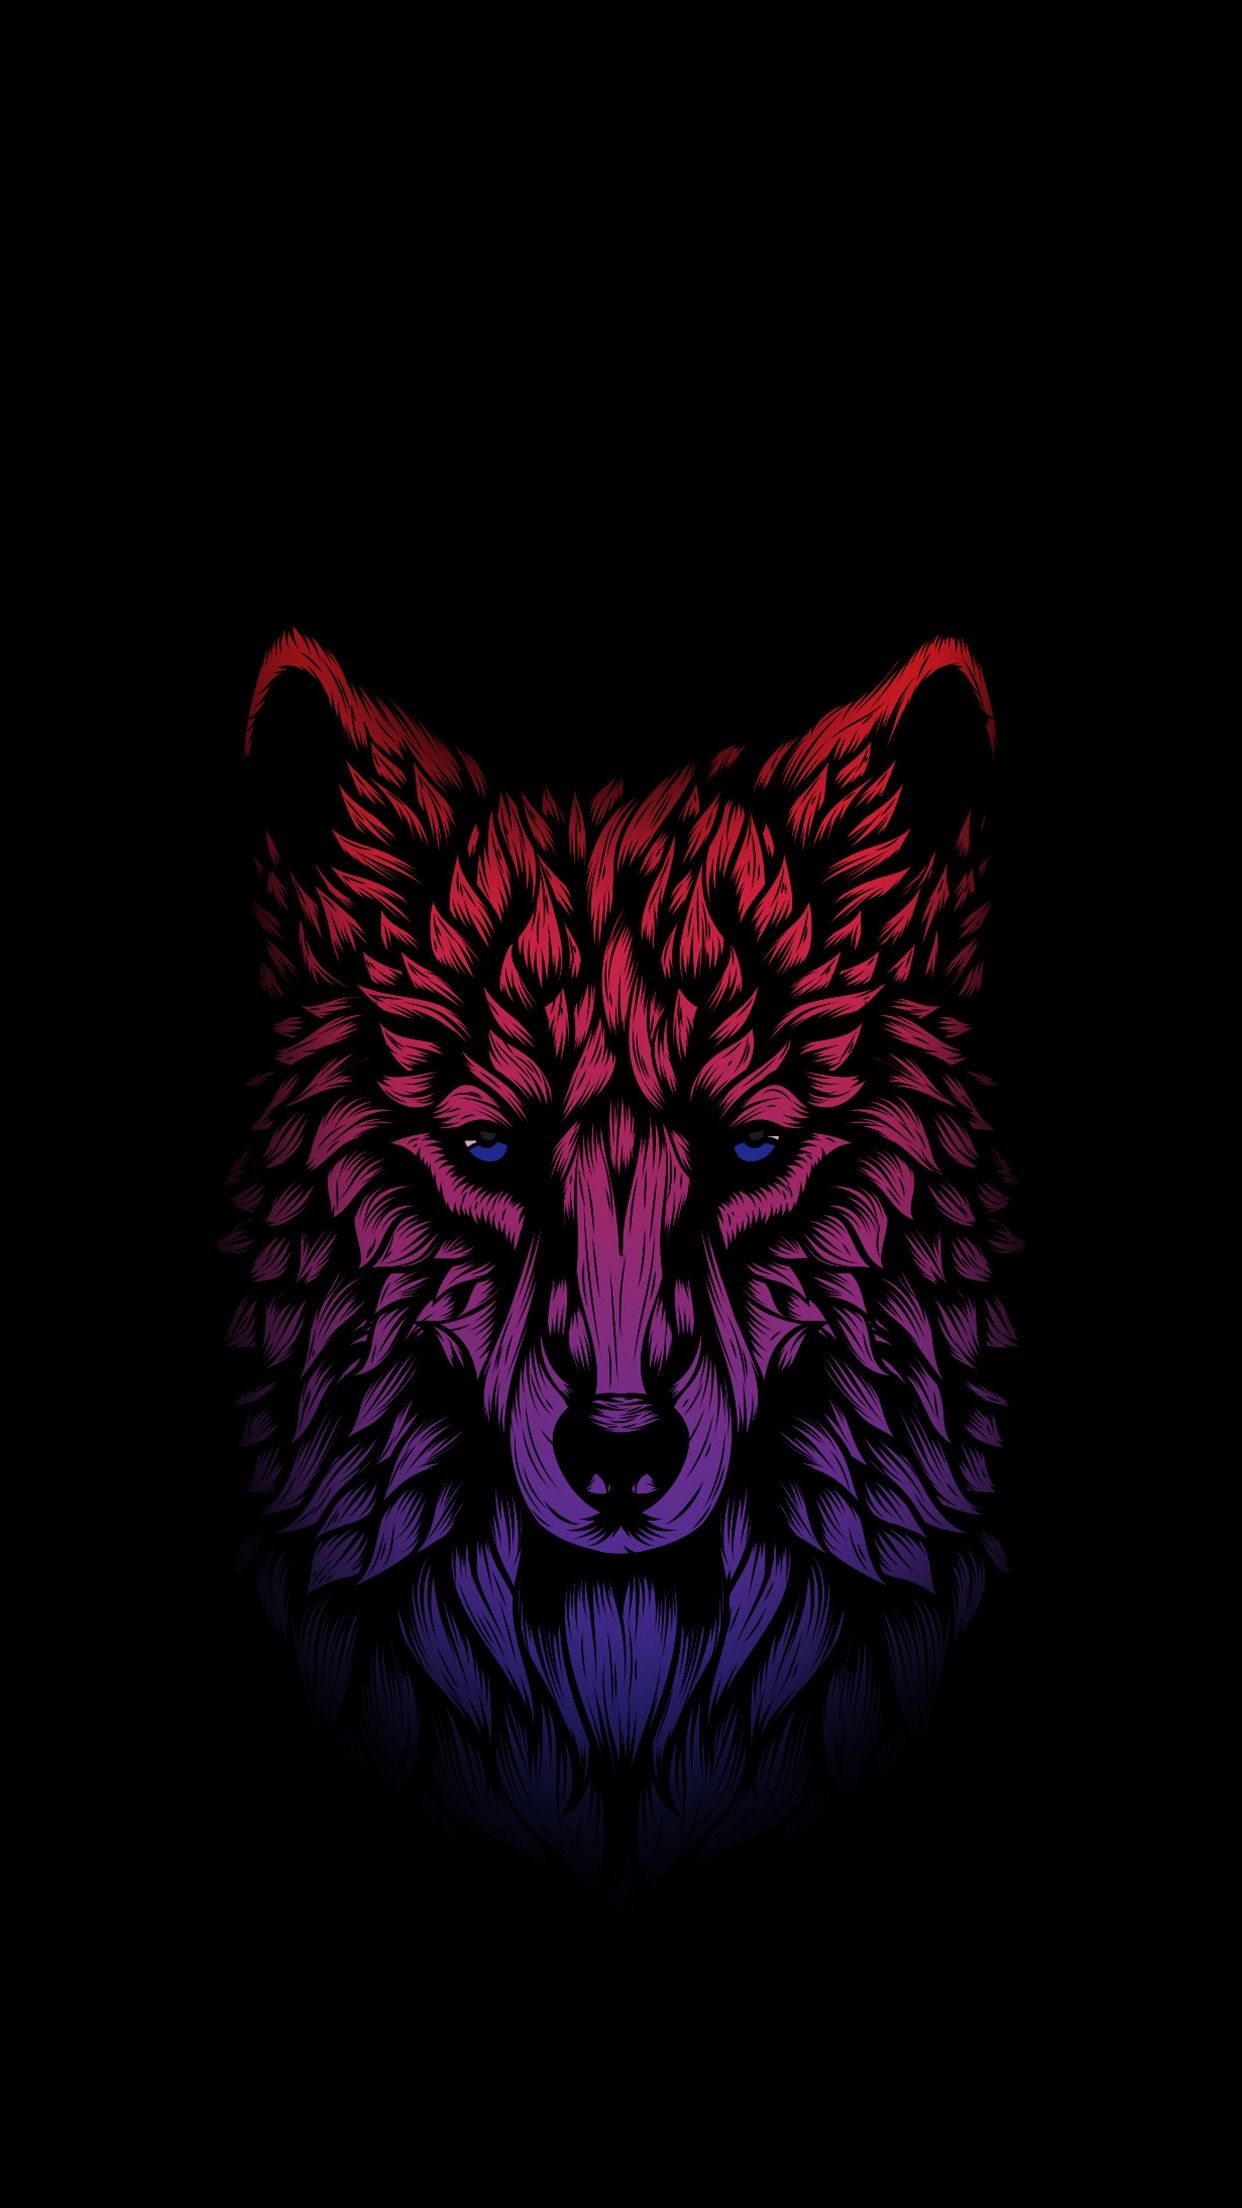 Pin By Paige Witter On Wallpaper Wolf Wallpaper Android Wallpaper Dark Wallpaper